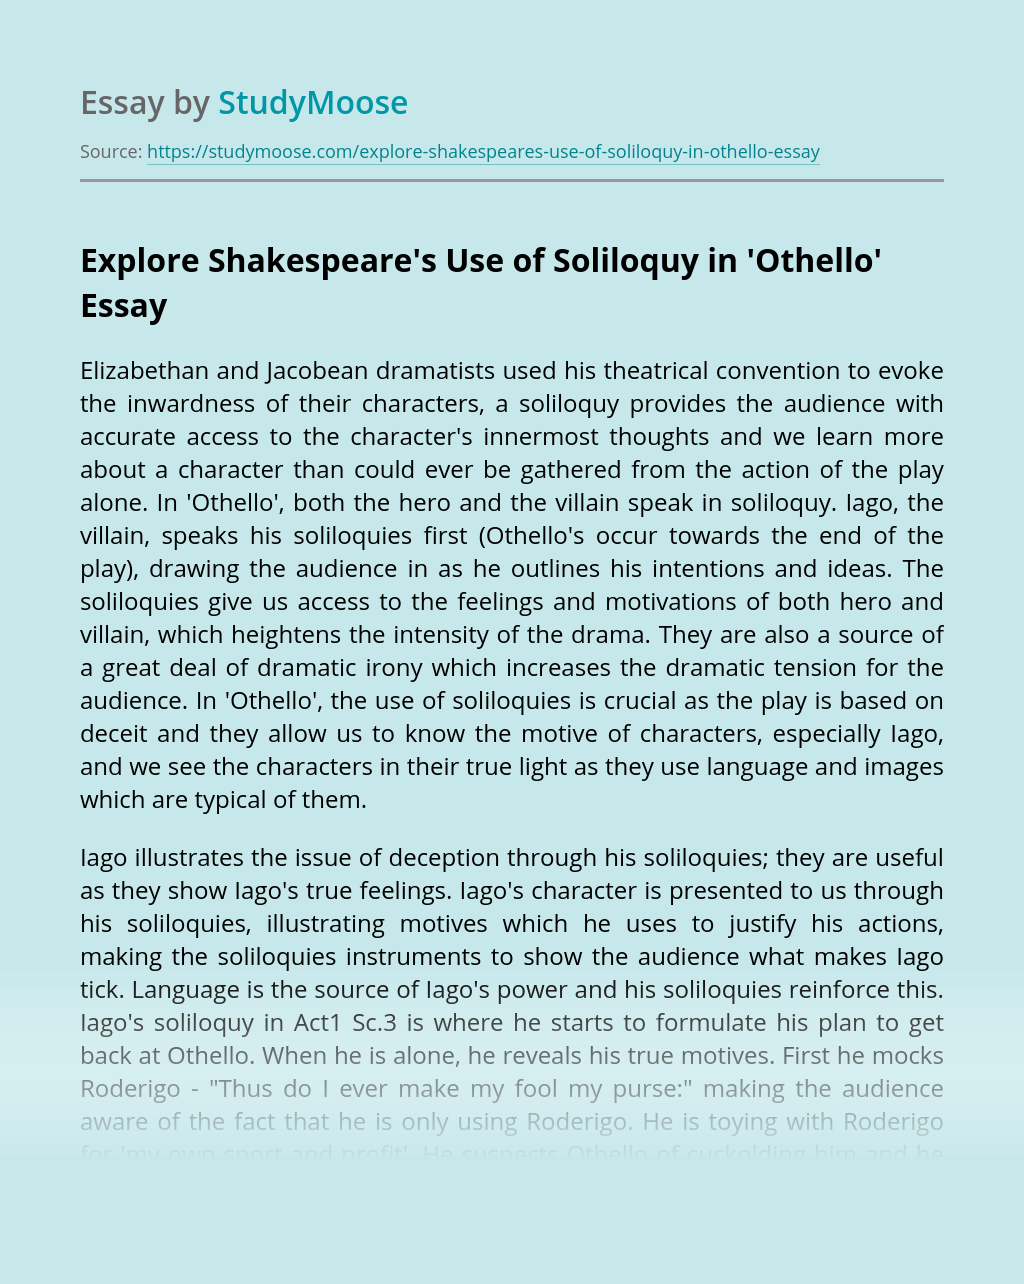 Explore Shakespeare's Use of Soliloquy in 'Othello'